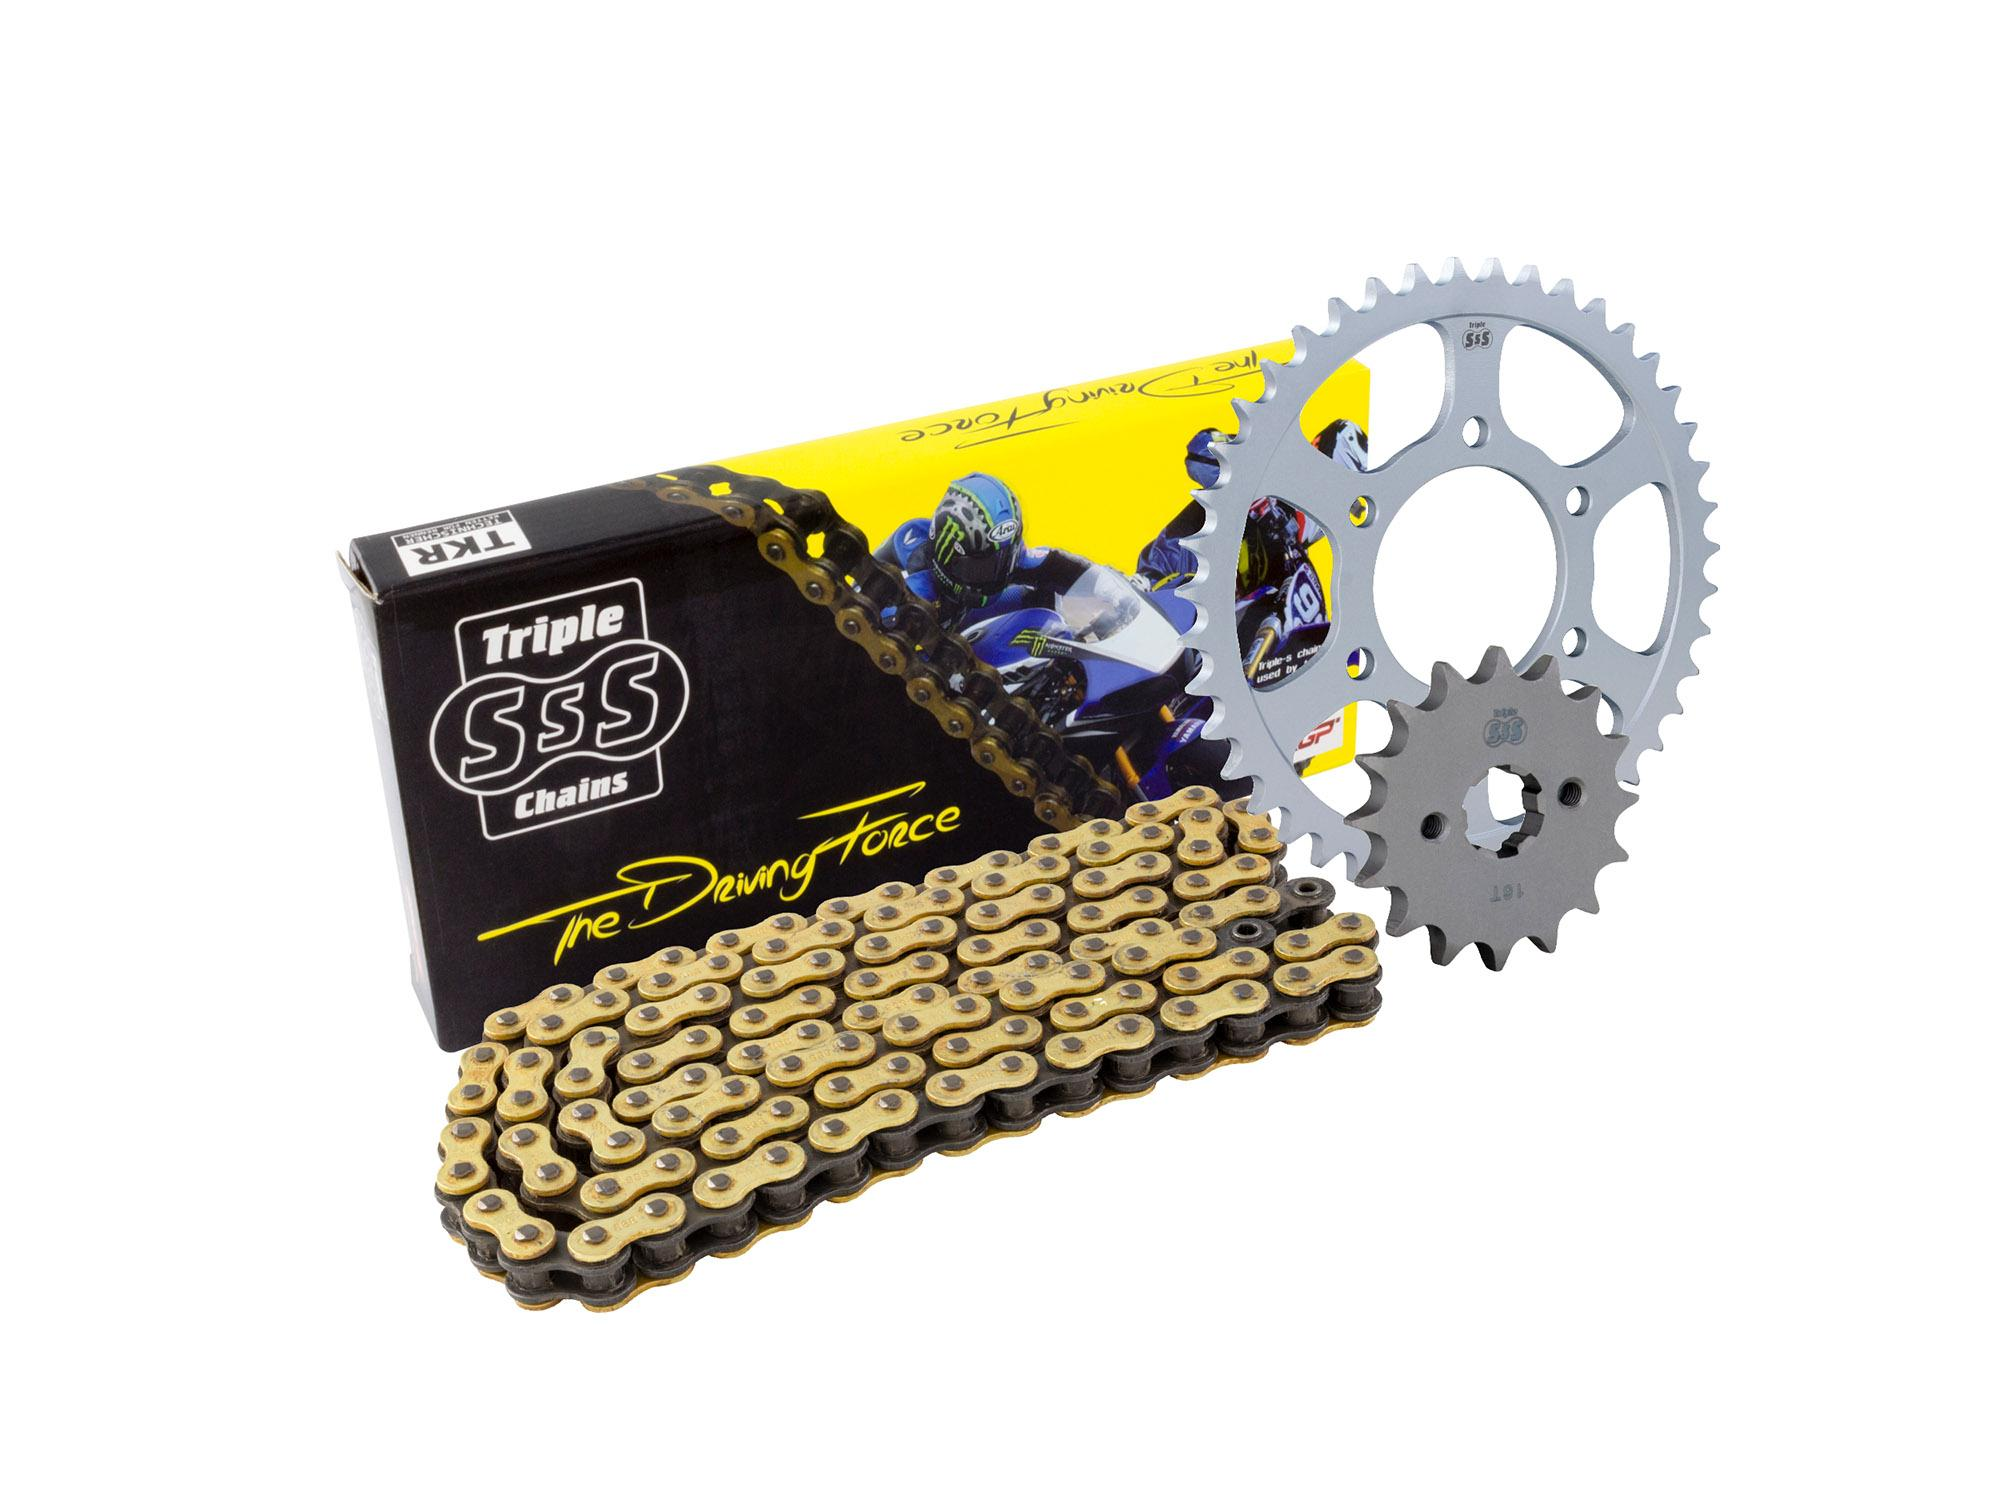 Kawasaki ZX-10R JBF Ninja 11> Chain & Sprocket Kit: 17T Front, 39T Rear, HD O-Ring Gold Chain 525H 112Link